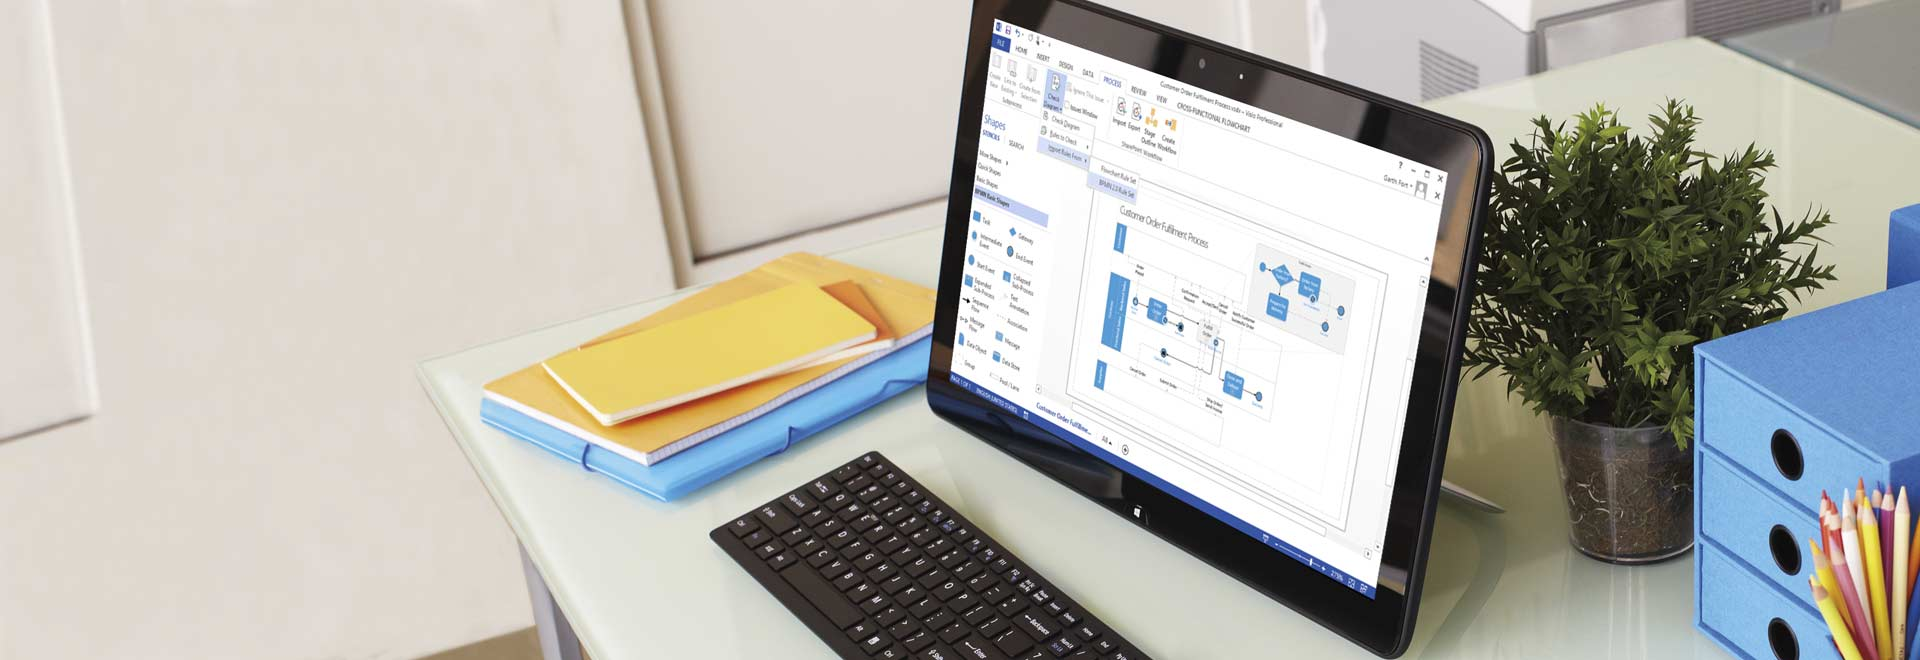 Visio 2019 3d view in use